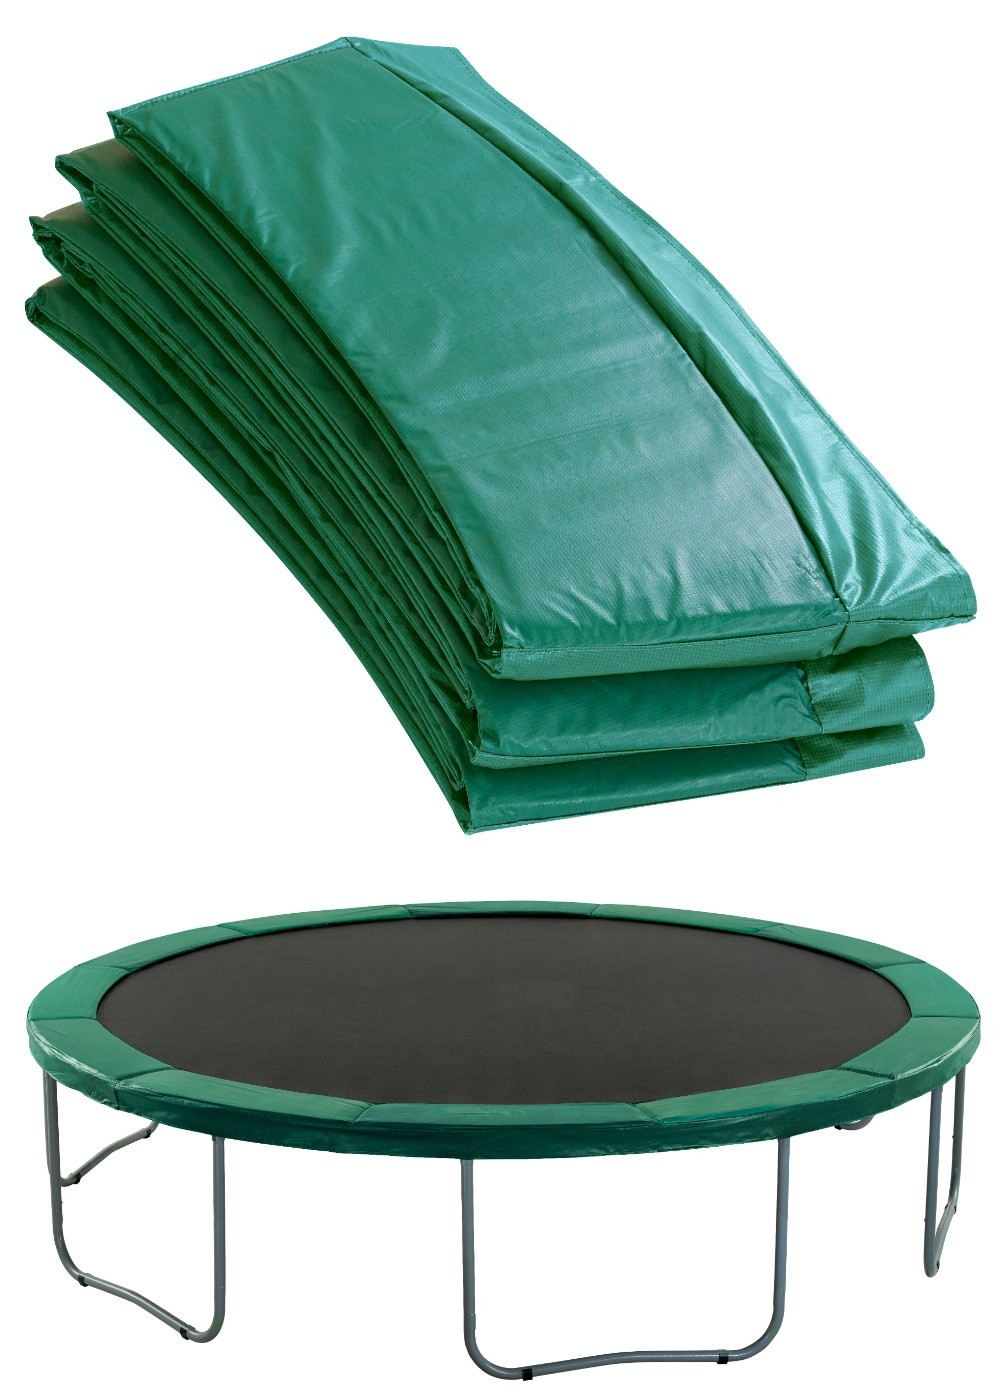 Premium Trampoline Replacement Safety Pad (Spring Cover) | Padding for 244cm 8ft Trampoline | Green